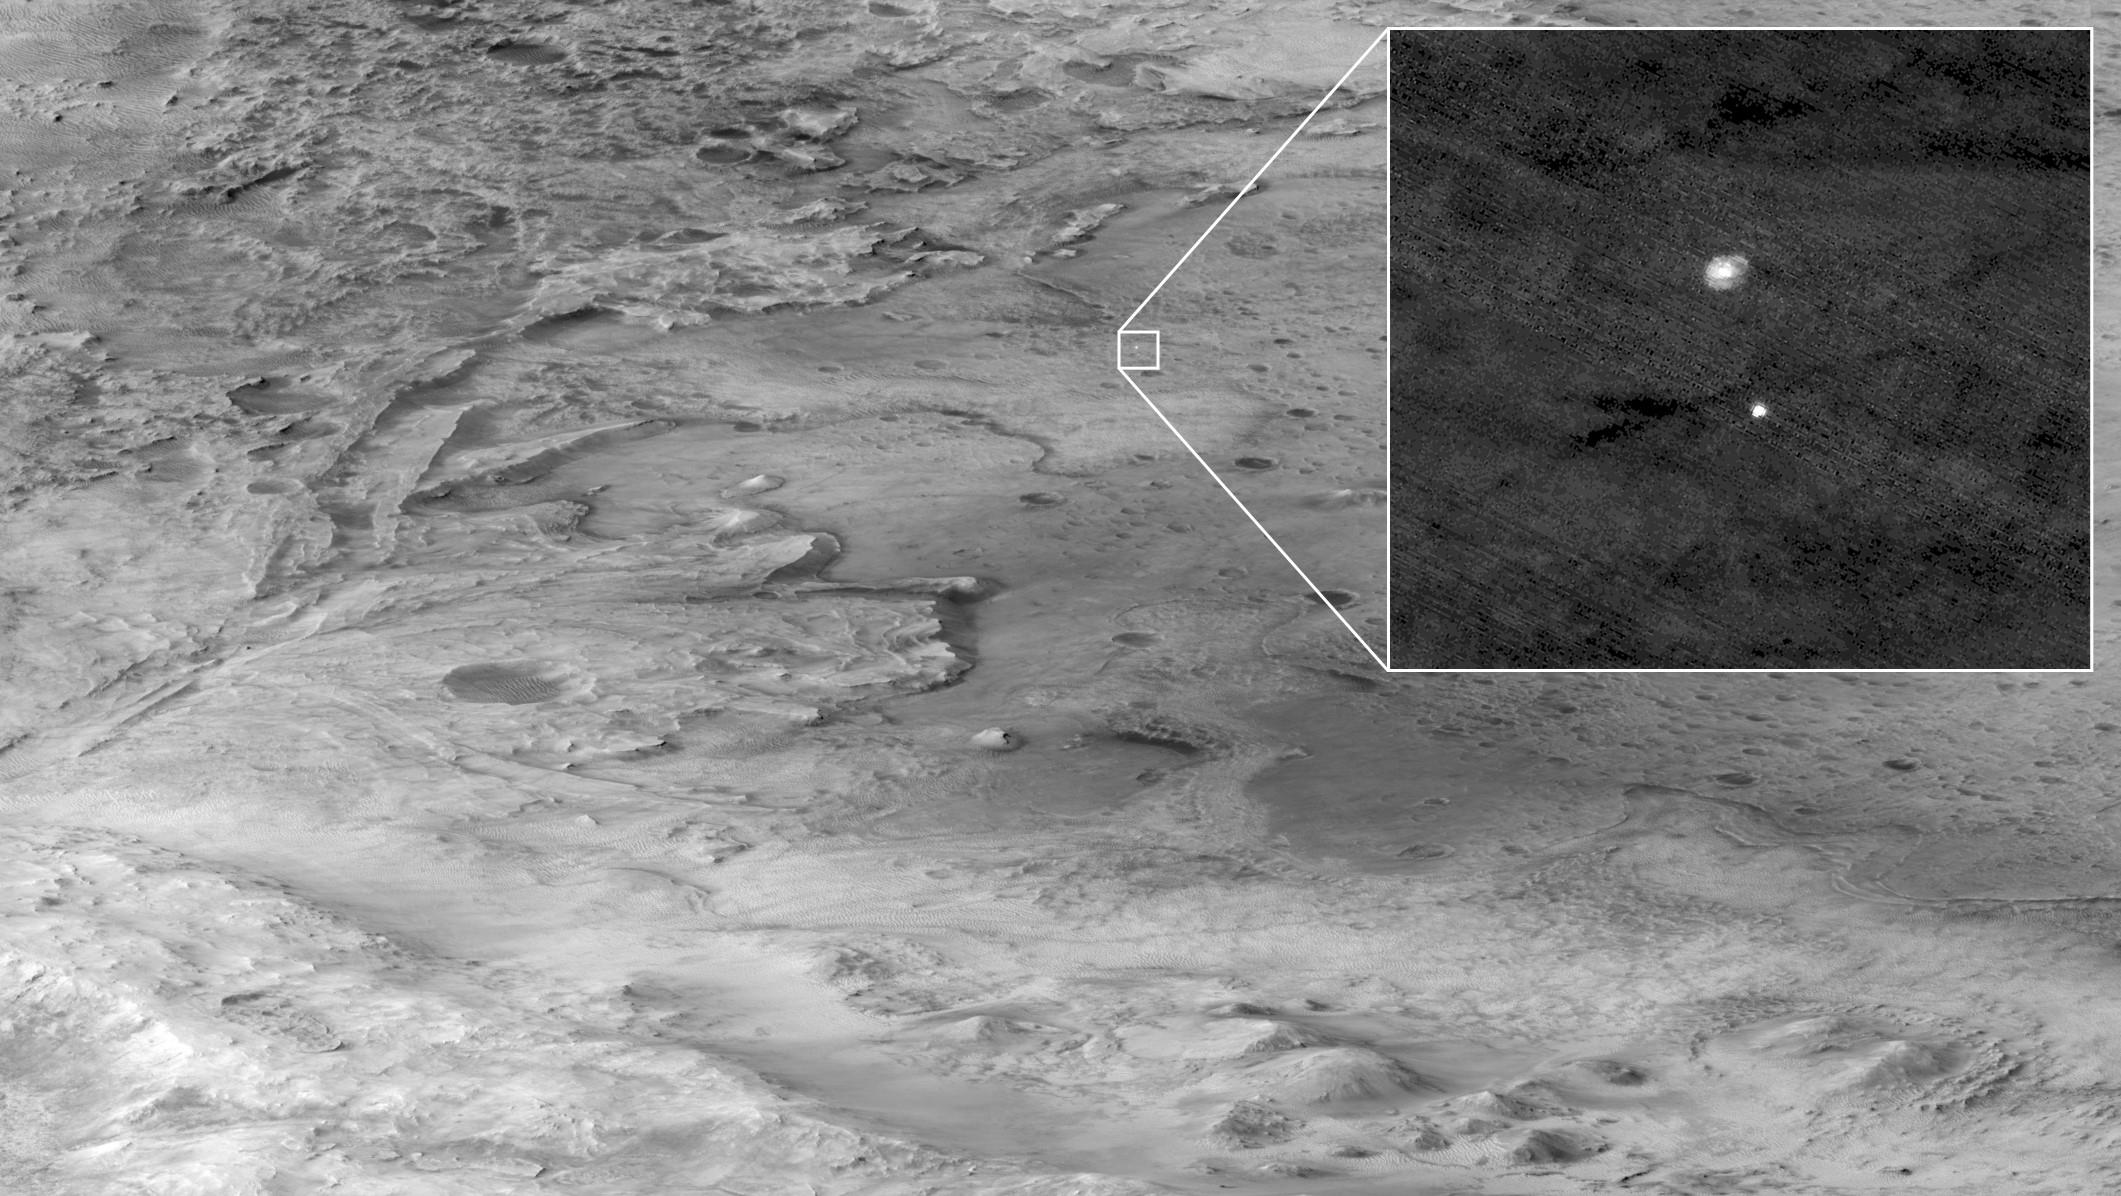 descent stage holding NASAs Perseverance rover can be seen falling thorough the Martian atmosphere